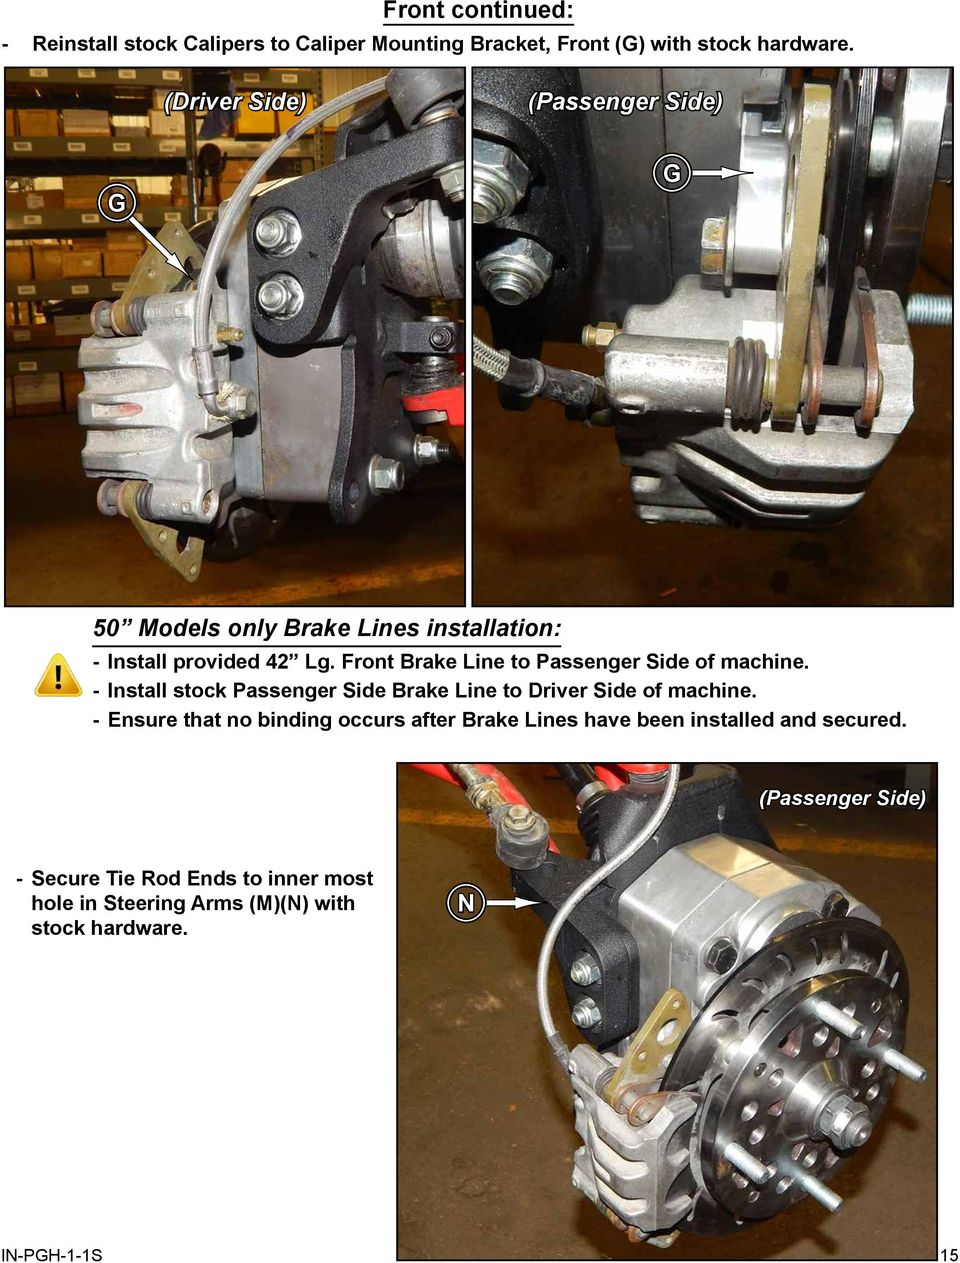 Front Brake Line to Passenger Side of machine. - Install stock Passenger Side Brake Line to Driver Side of machine.